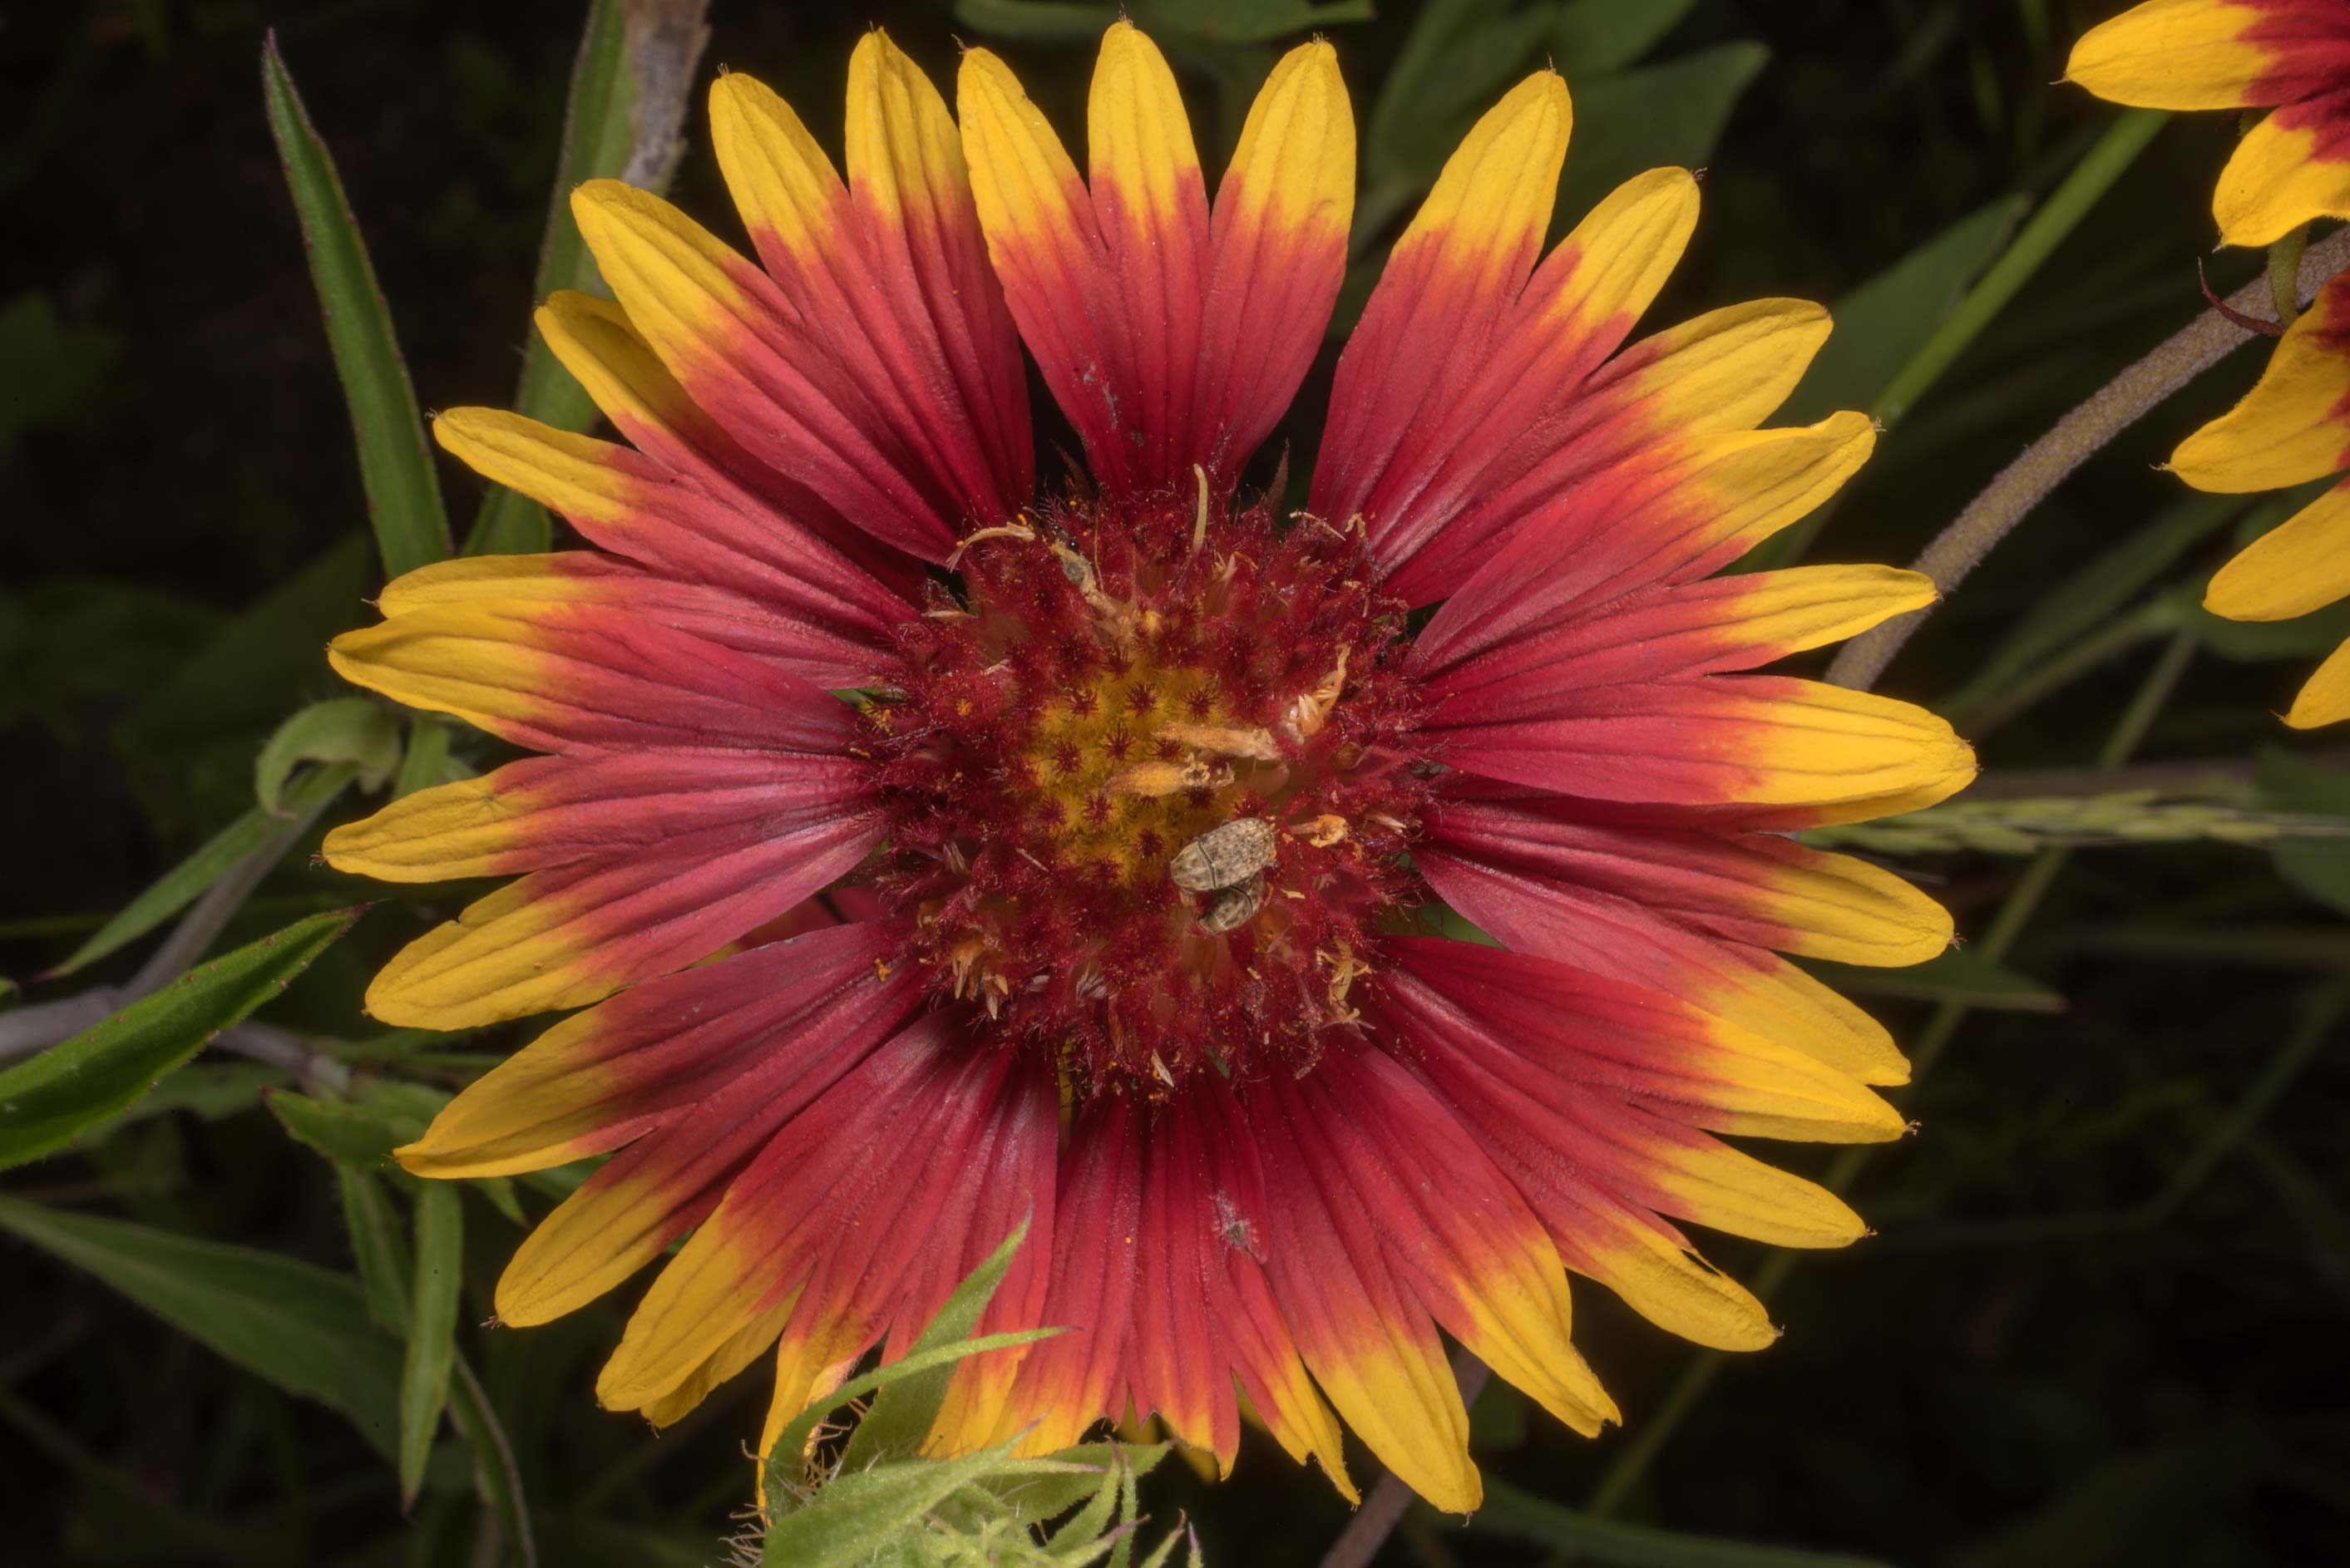 Firewheel (Gaillardia pulchella) on Wildflower...State Historic Site. Washington, Texas